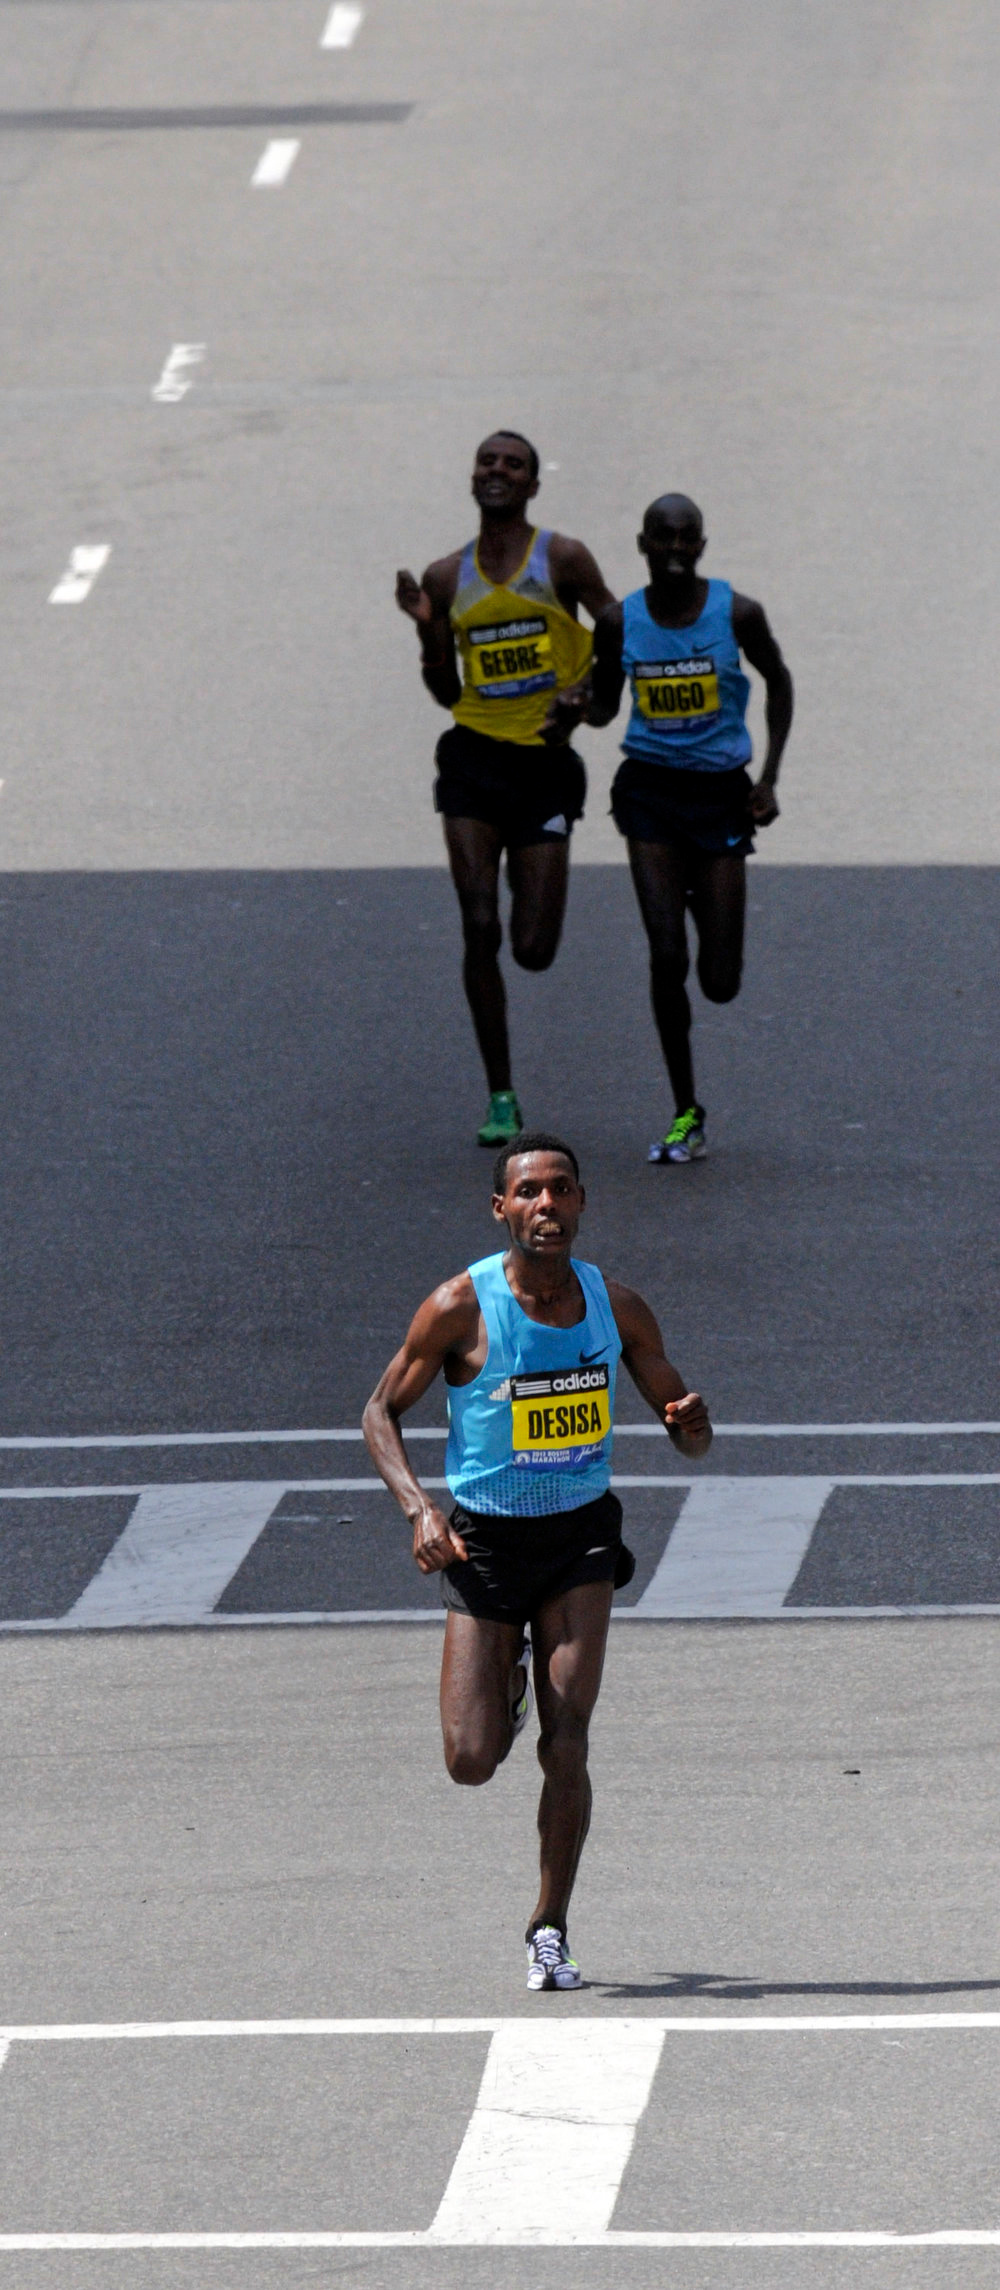 """. Lelisa Desisa Benti of Ethiopia (front) runs a few seconds ahead of Micah Kogo of Kenya and Gebregziabher \""""Gebre\"""" Gebremariam of Ethiopa as they sprint to the finish of the men\'s division of the 117th Boston Marathon in Boston, Massachusetts April 15, 2013. REUTERS/Neal Hamberg"""